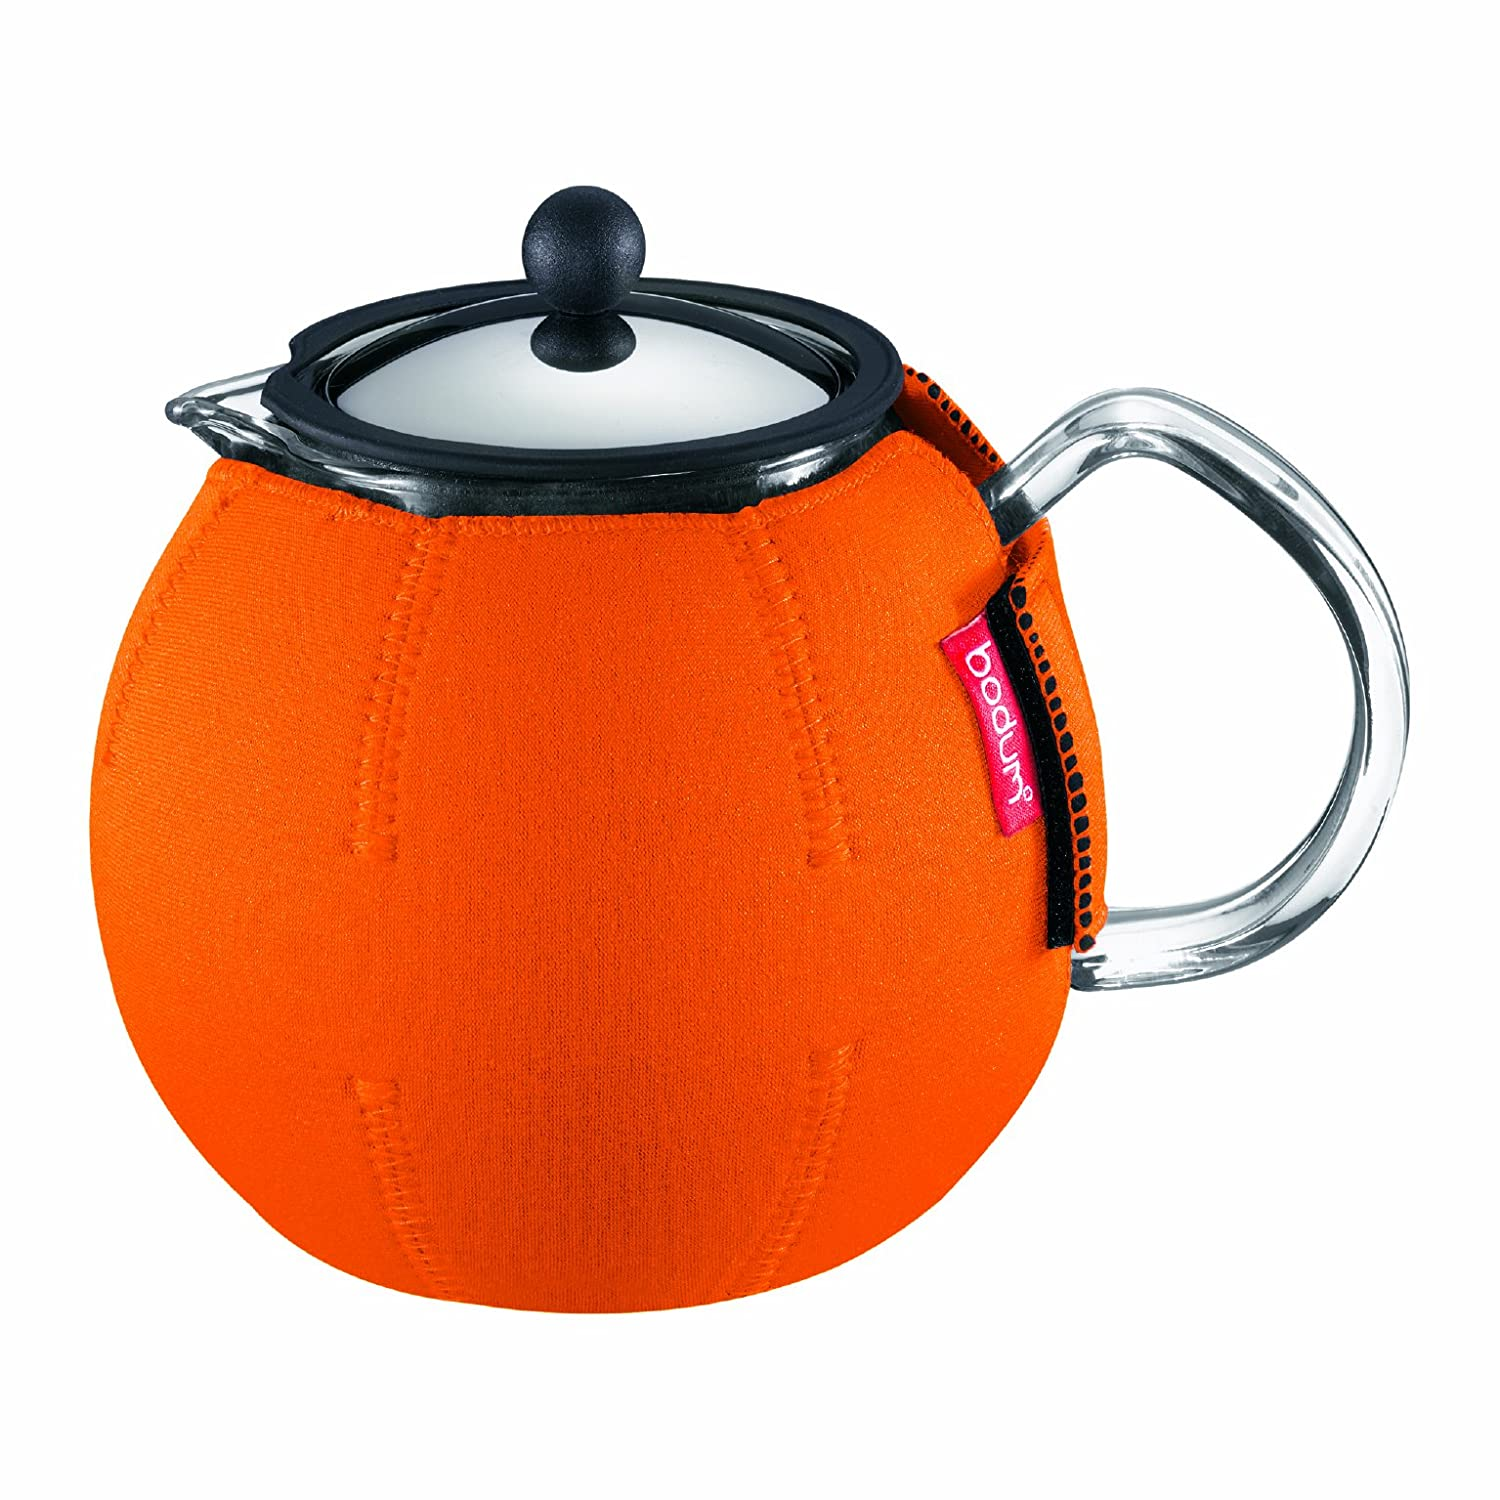 Bodum 11022-106 Nero 1.0 Litre 34 oz Tea Coat for Assam Tea Press, Orange